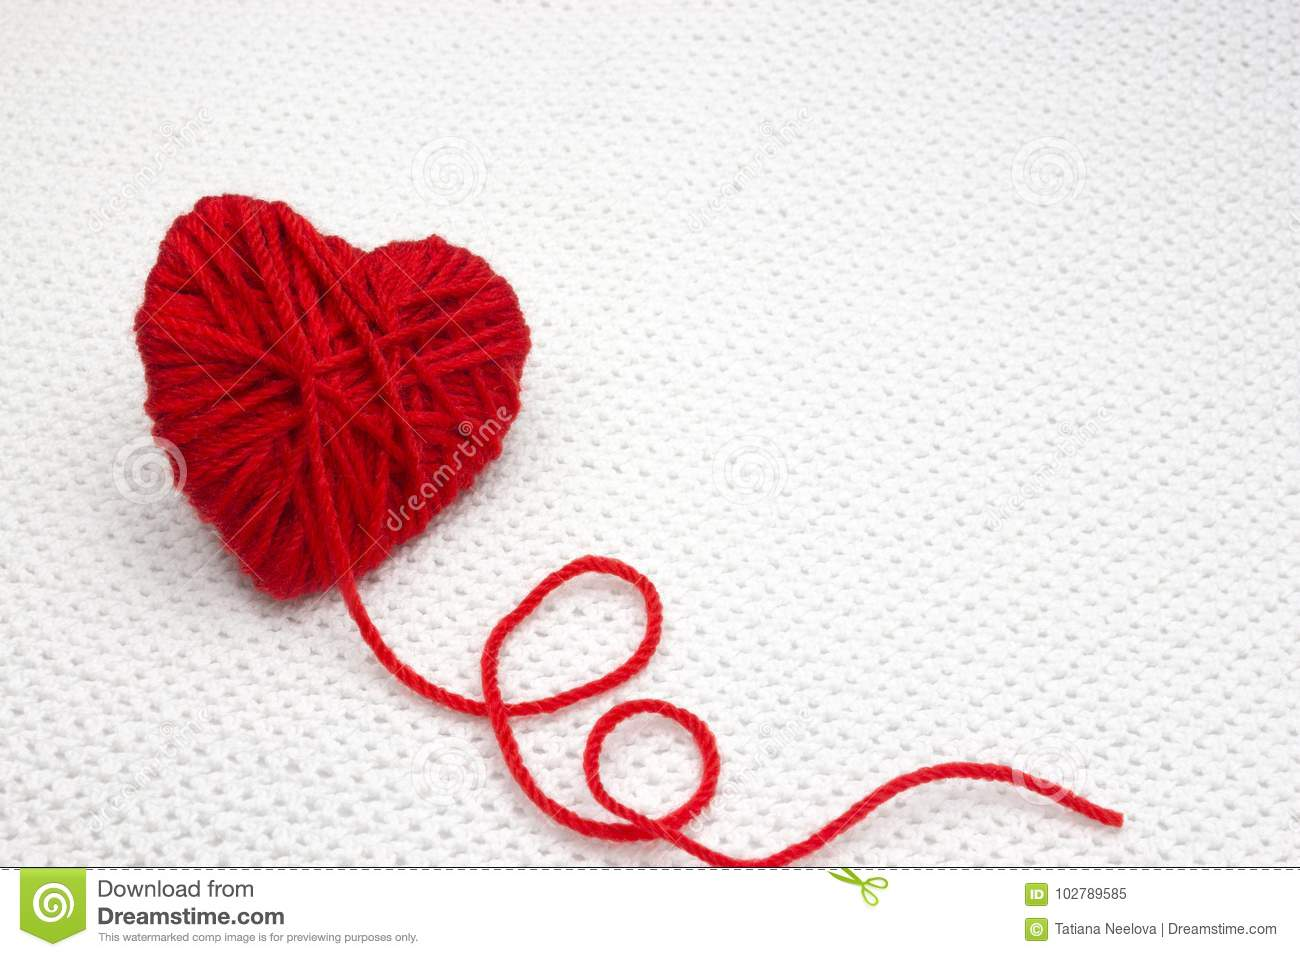 Red Yarn Ball Like A Heart On The White Crochet Background Romantic